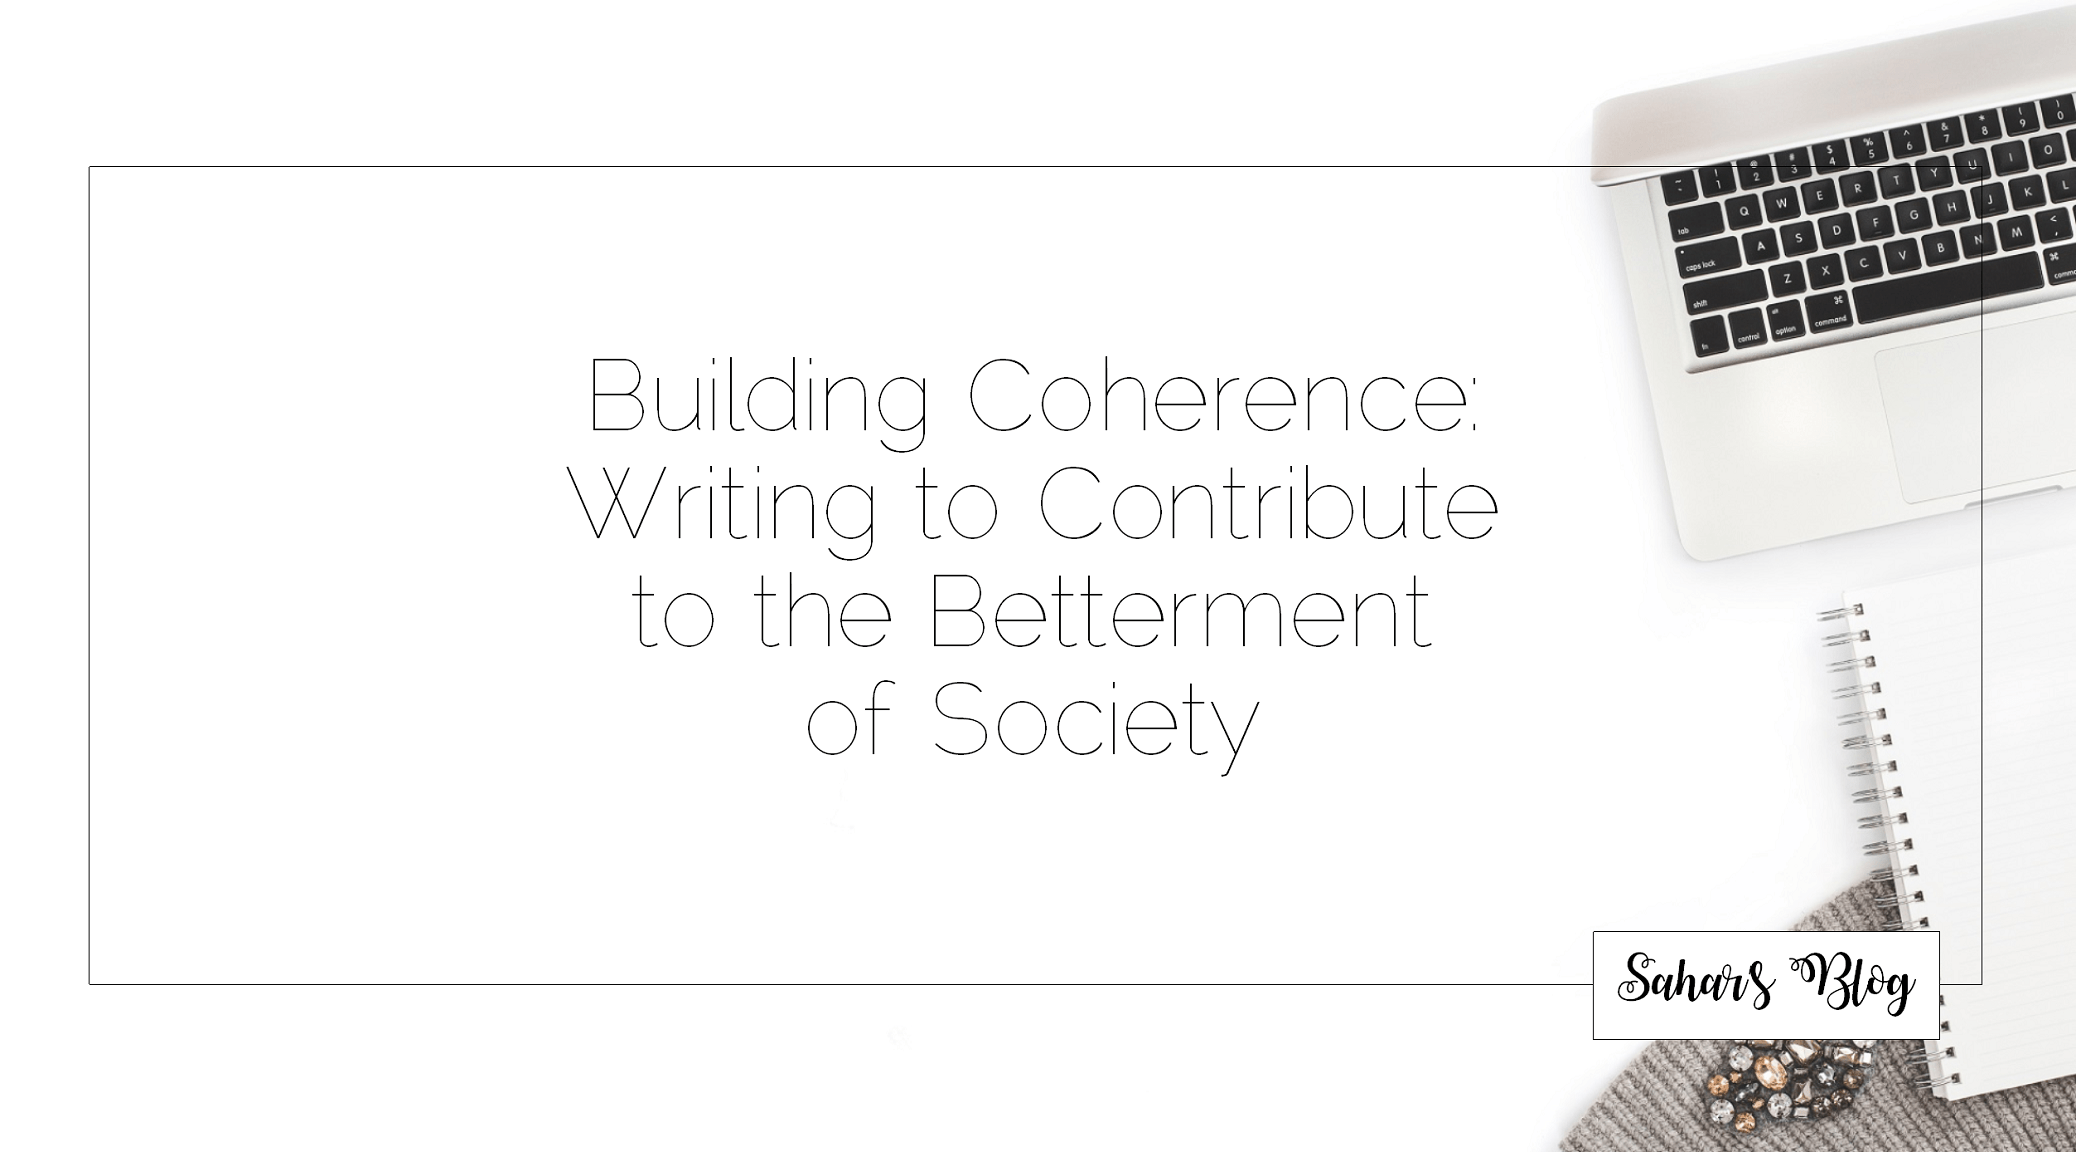 Building Coherence: Writing to Contribute to the